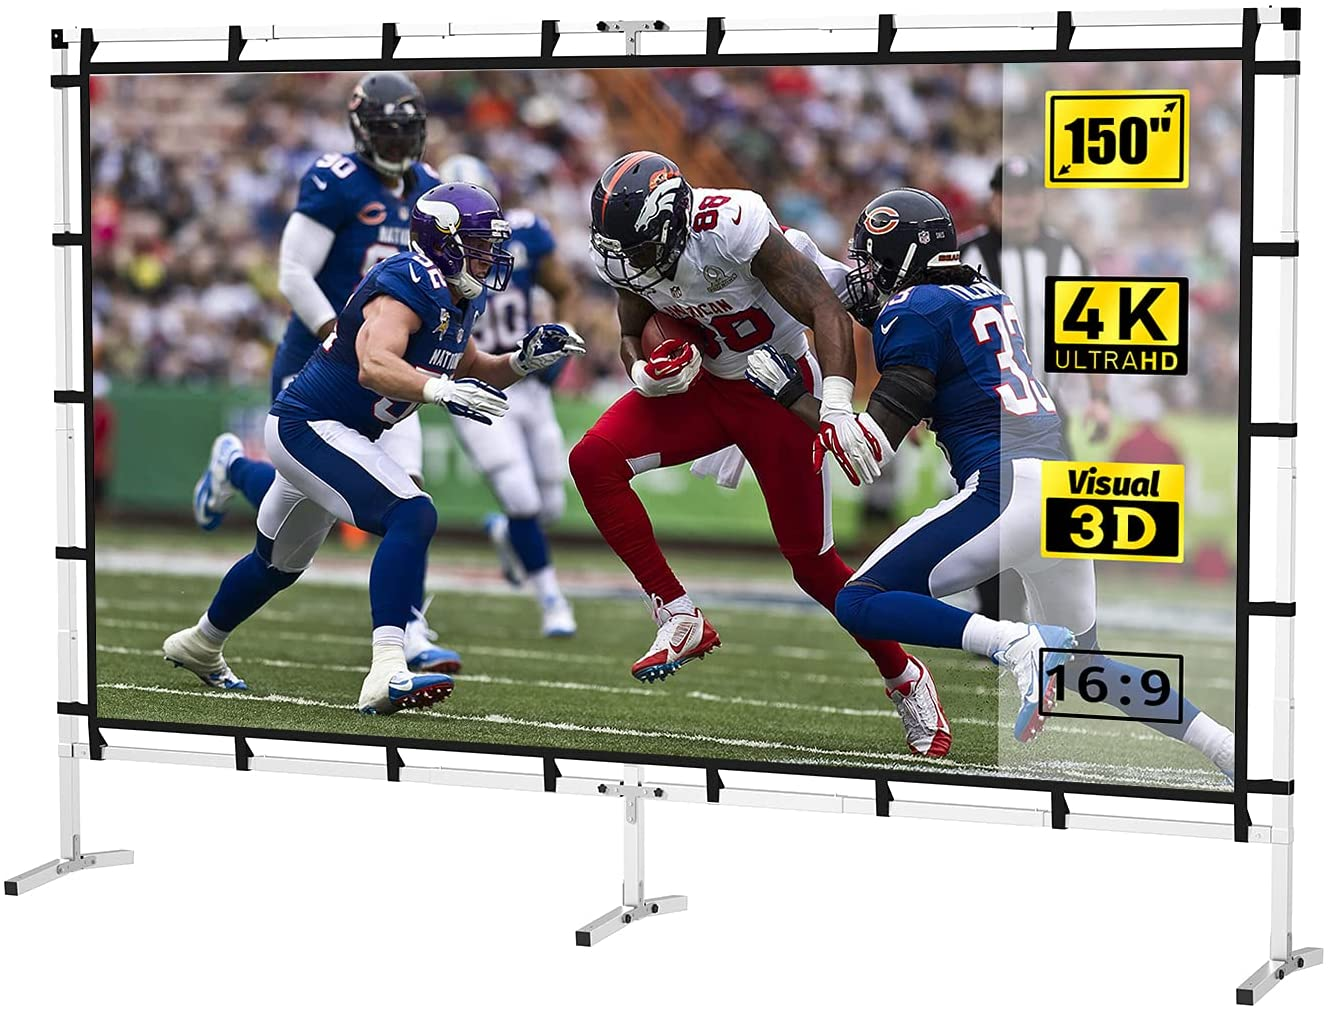 PVO Projector Screen